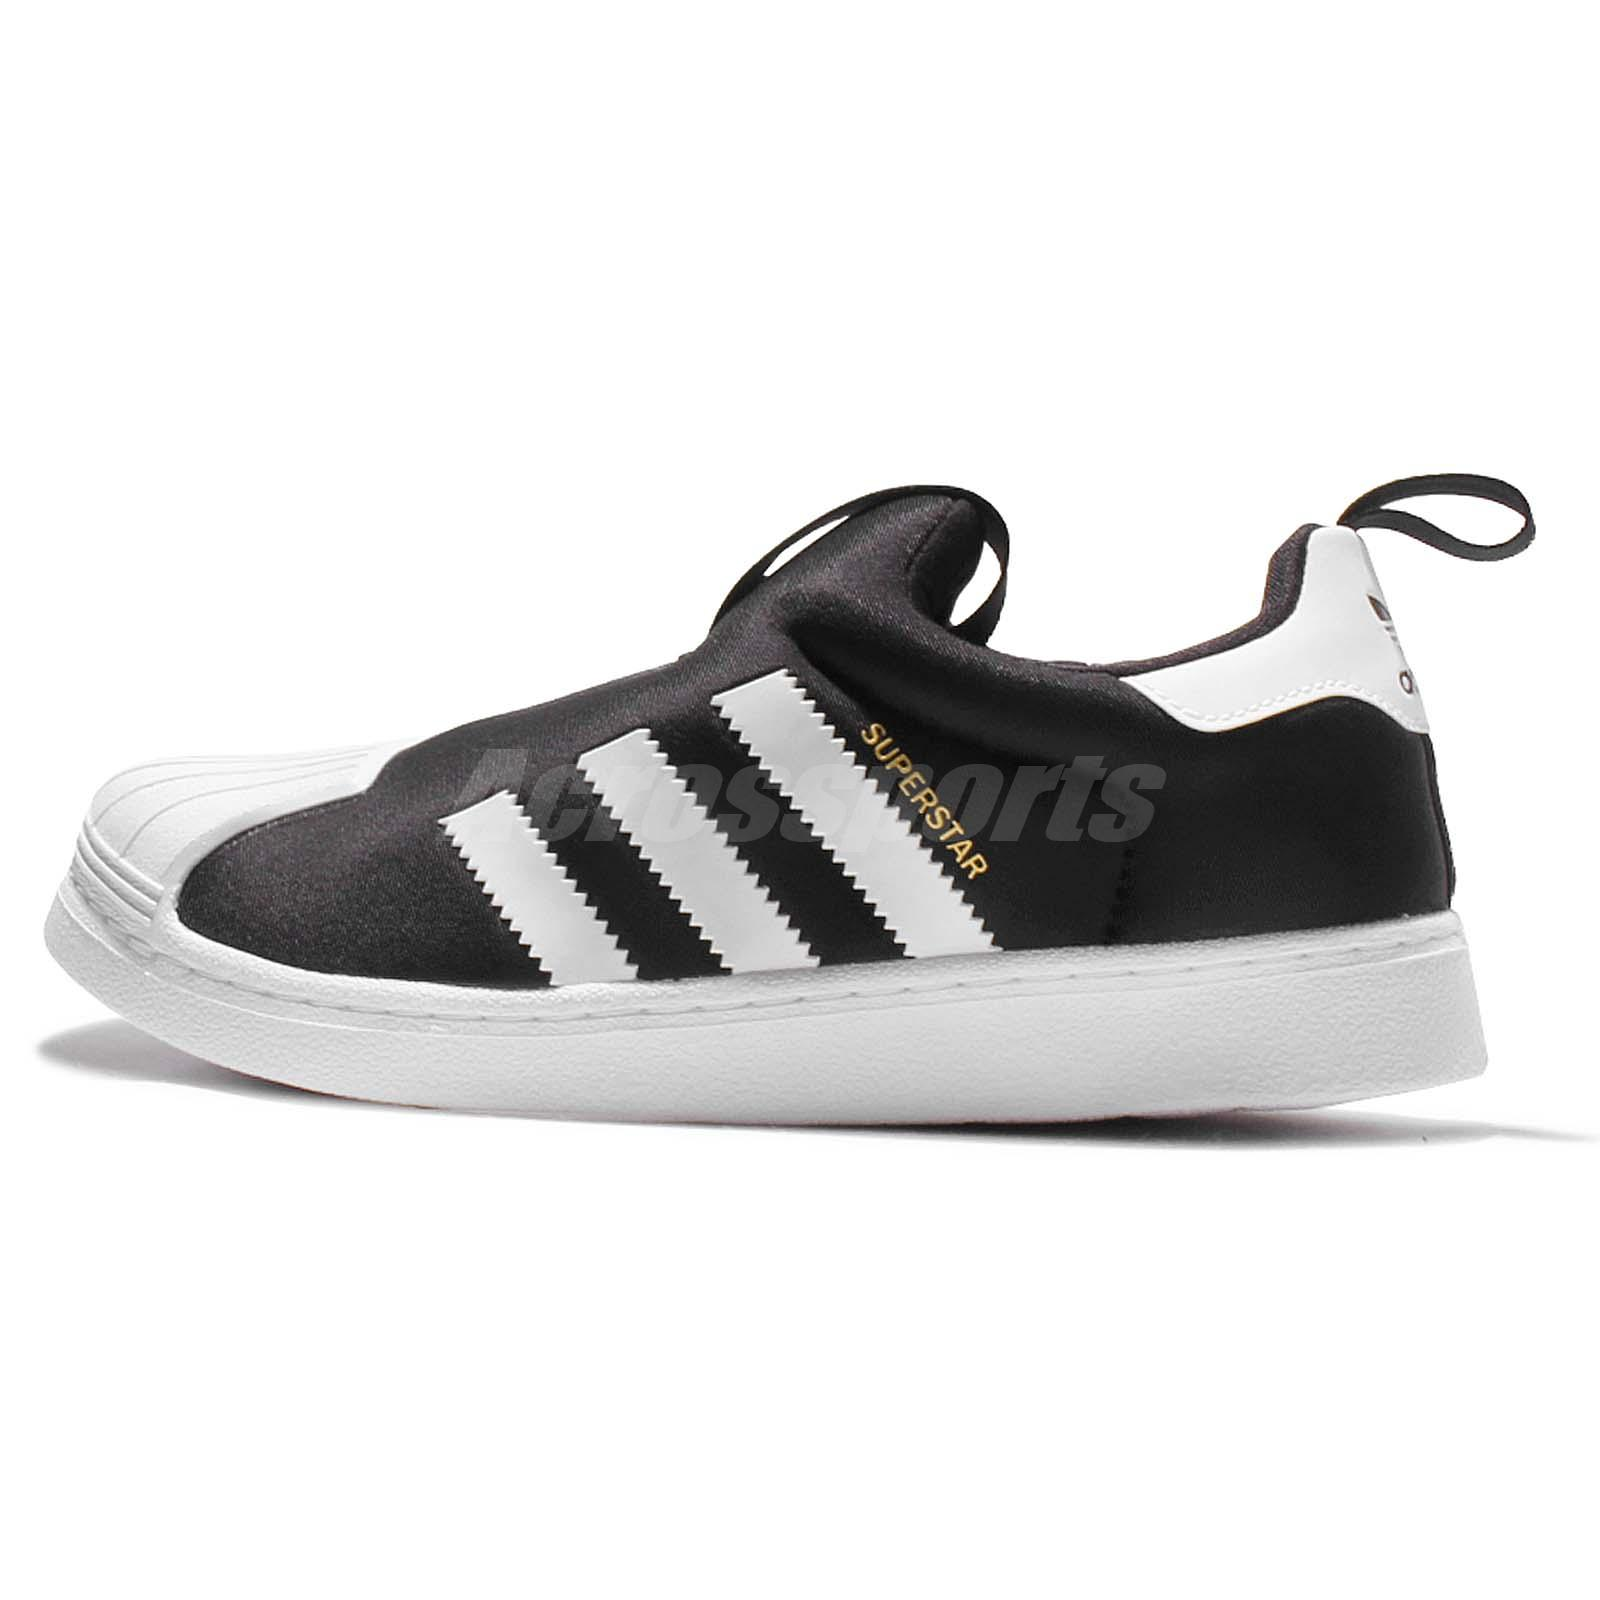 a6365e13f65 adidas Originals Superstar 360 C Black White Kid Preschool Slip On Shoes  S32130